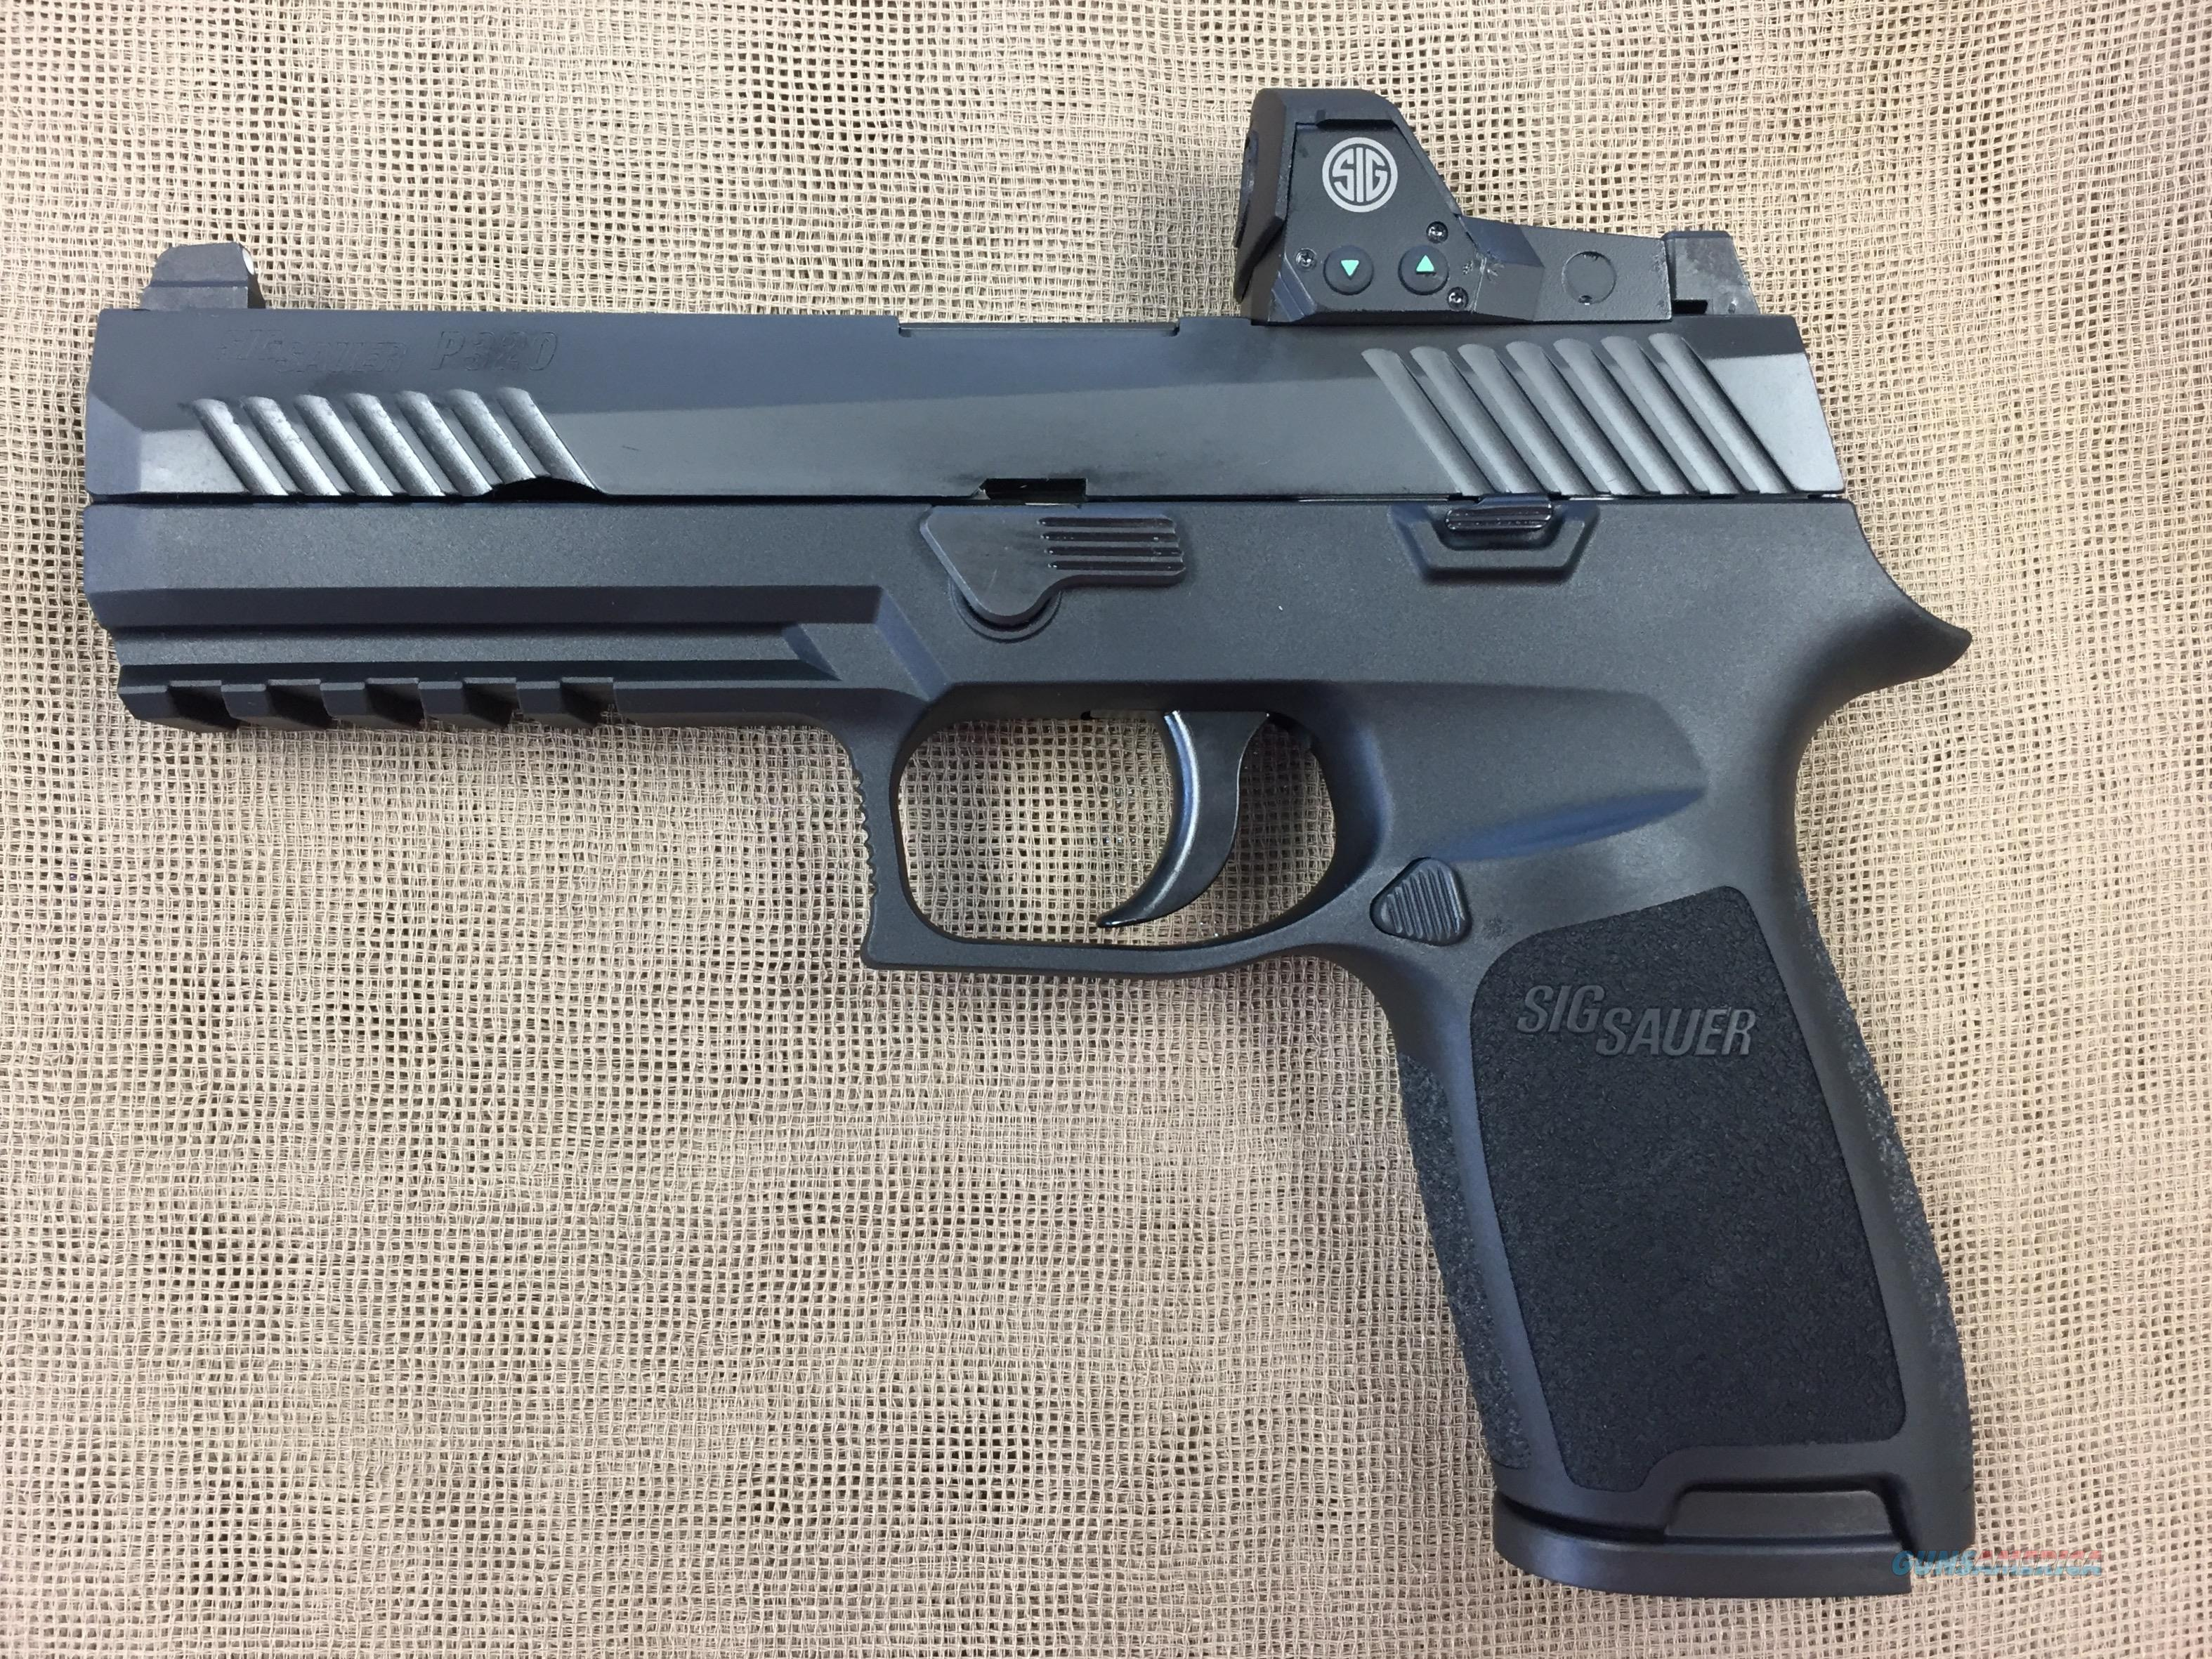 SIG SAUER P320 RX FULL SIZE 9MM  Guns > Pistols > Sig - Sauer/Sigarms Pistols > P320